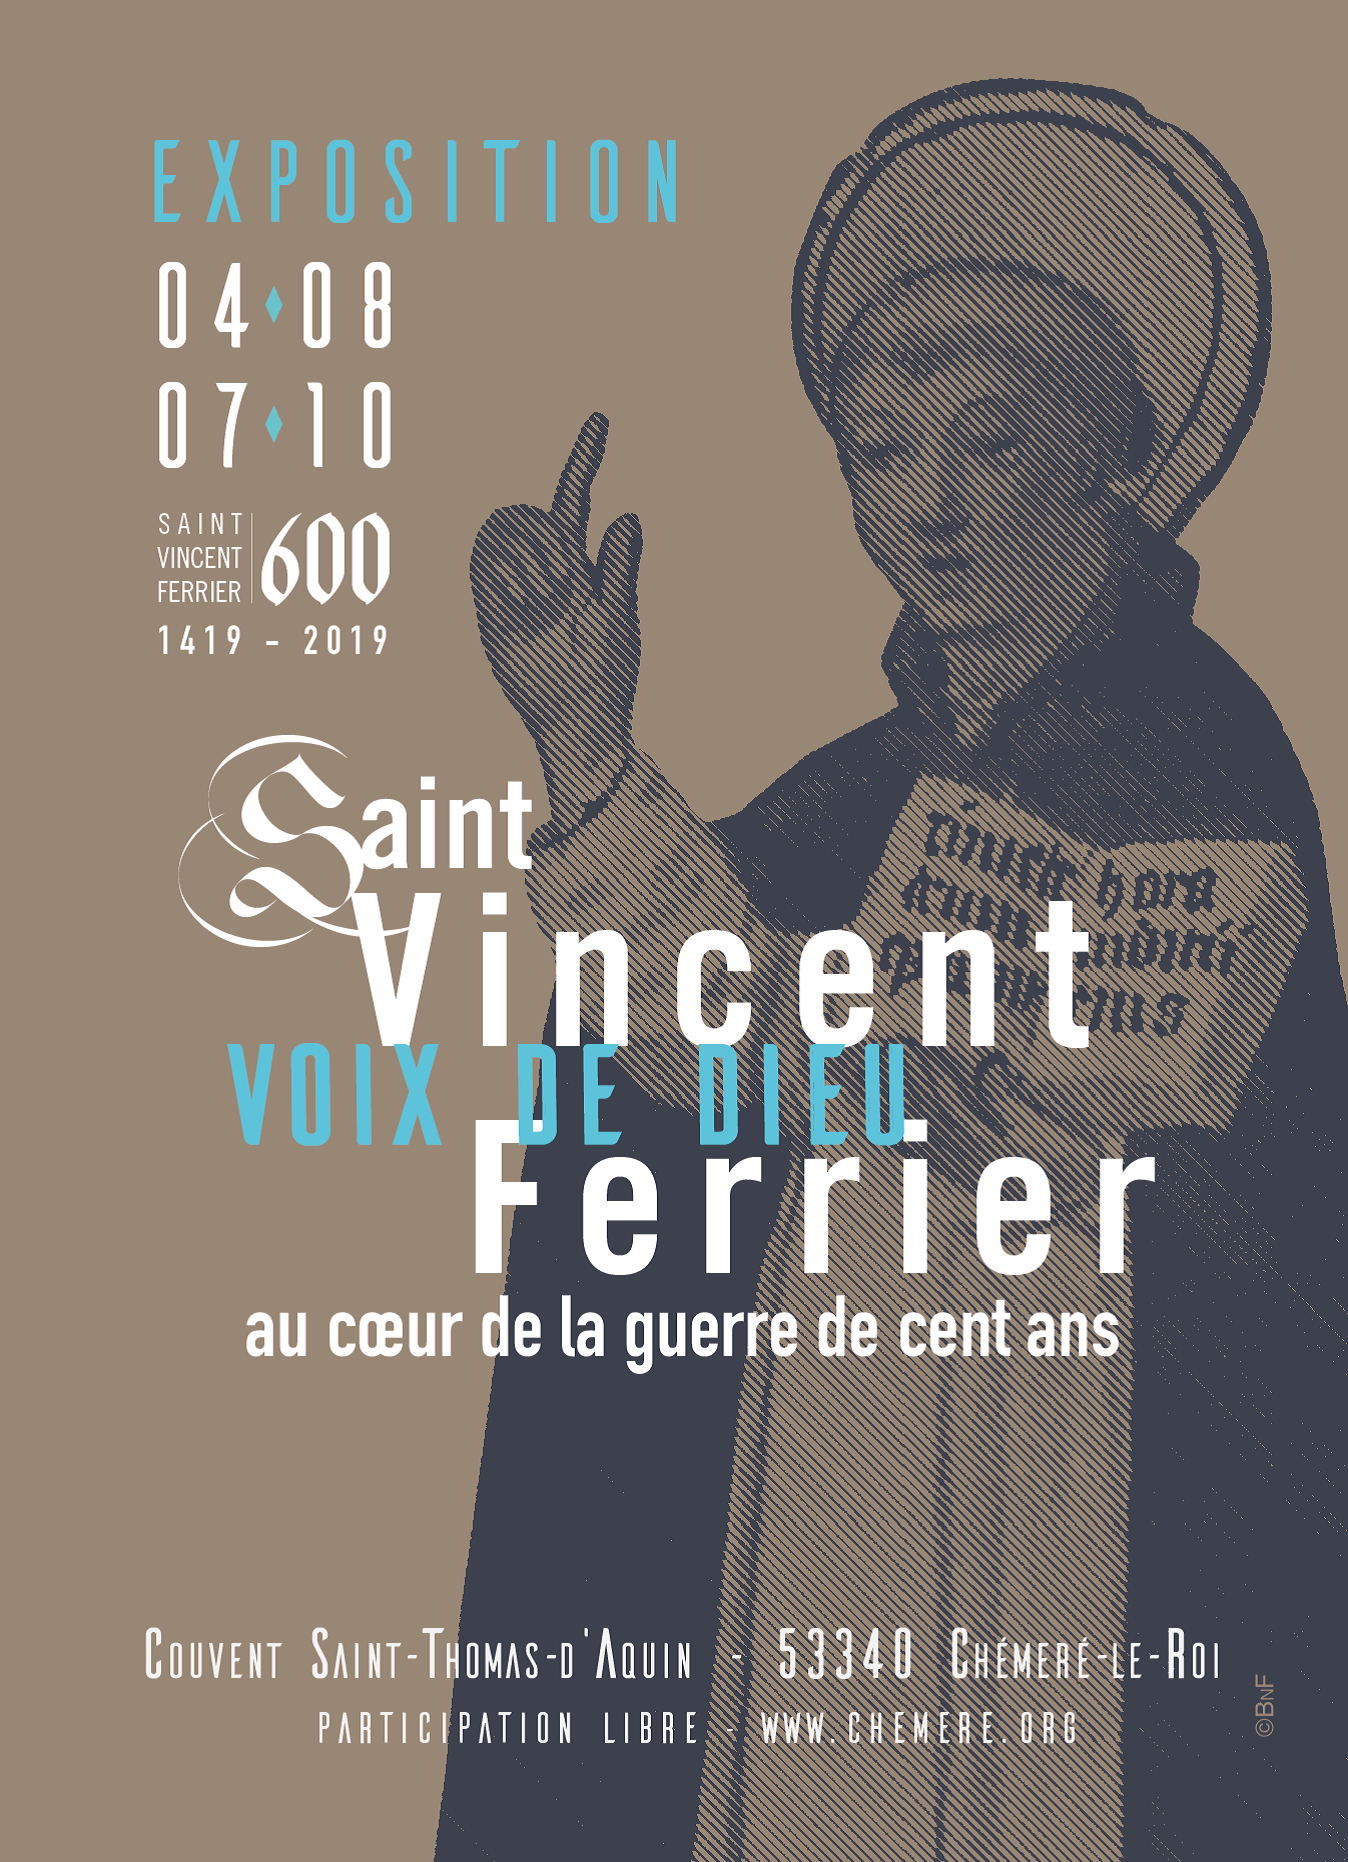 Expo Saint Vincent Ferrier - 4 août - 7 oct 2019.png